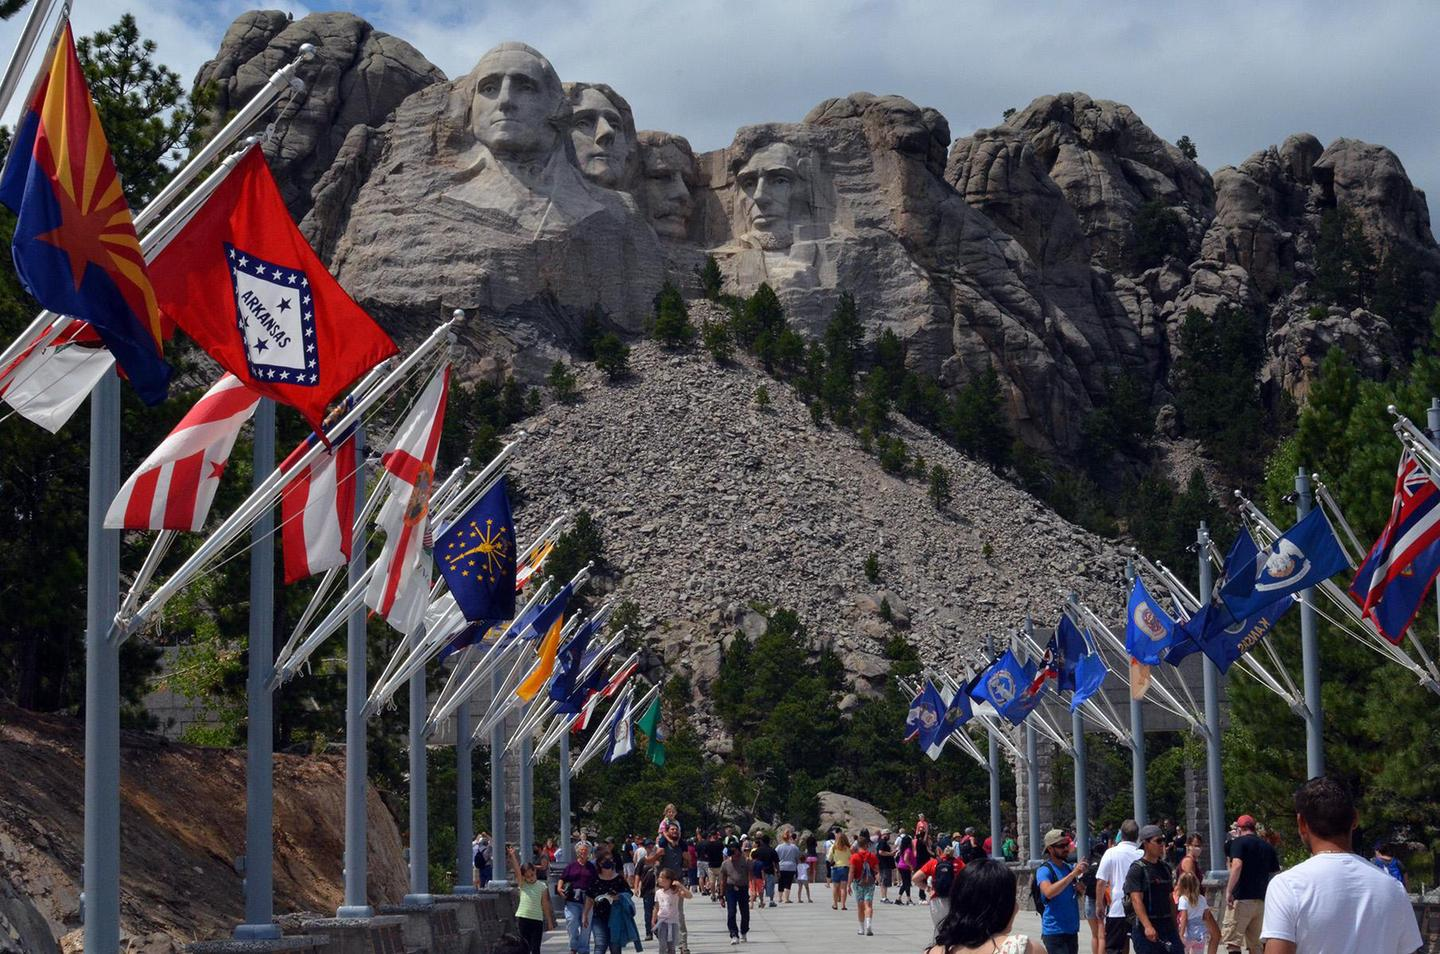 Mount Rushmore and the Avenue of FlagsVisitors walking along the Avenue of Flags with Mount Rushmore in the background.